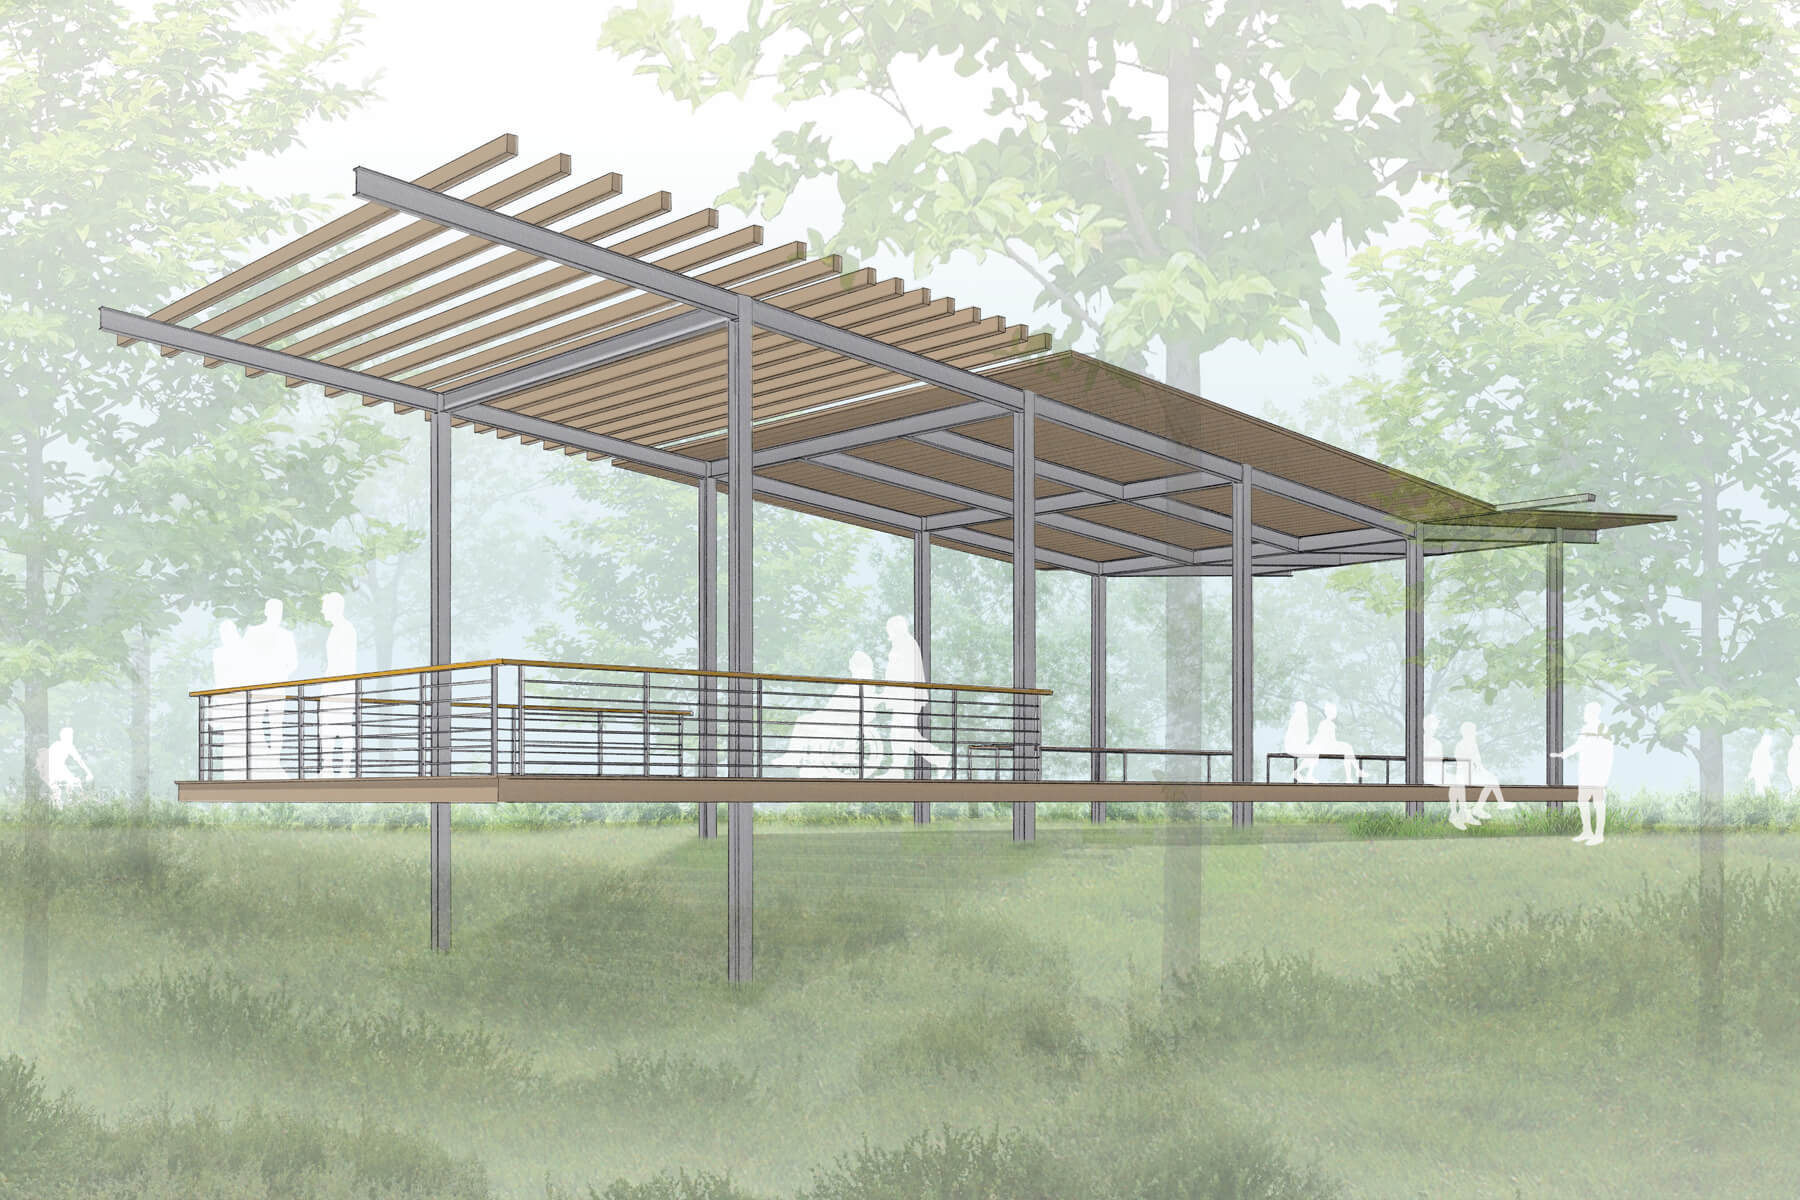 Riverlink Park architectural build in WNC by Samsel Architects